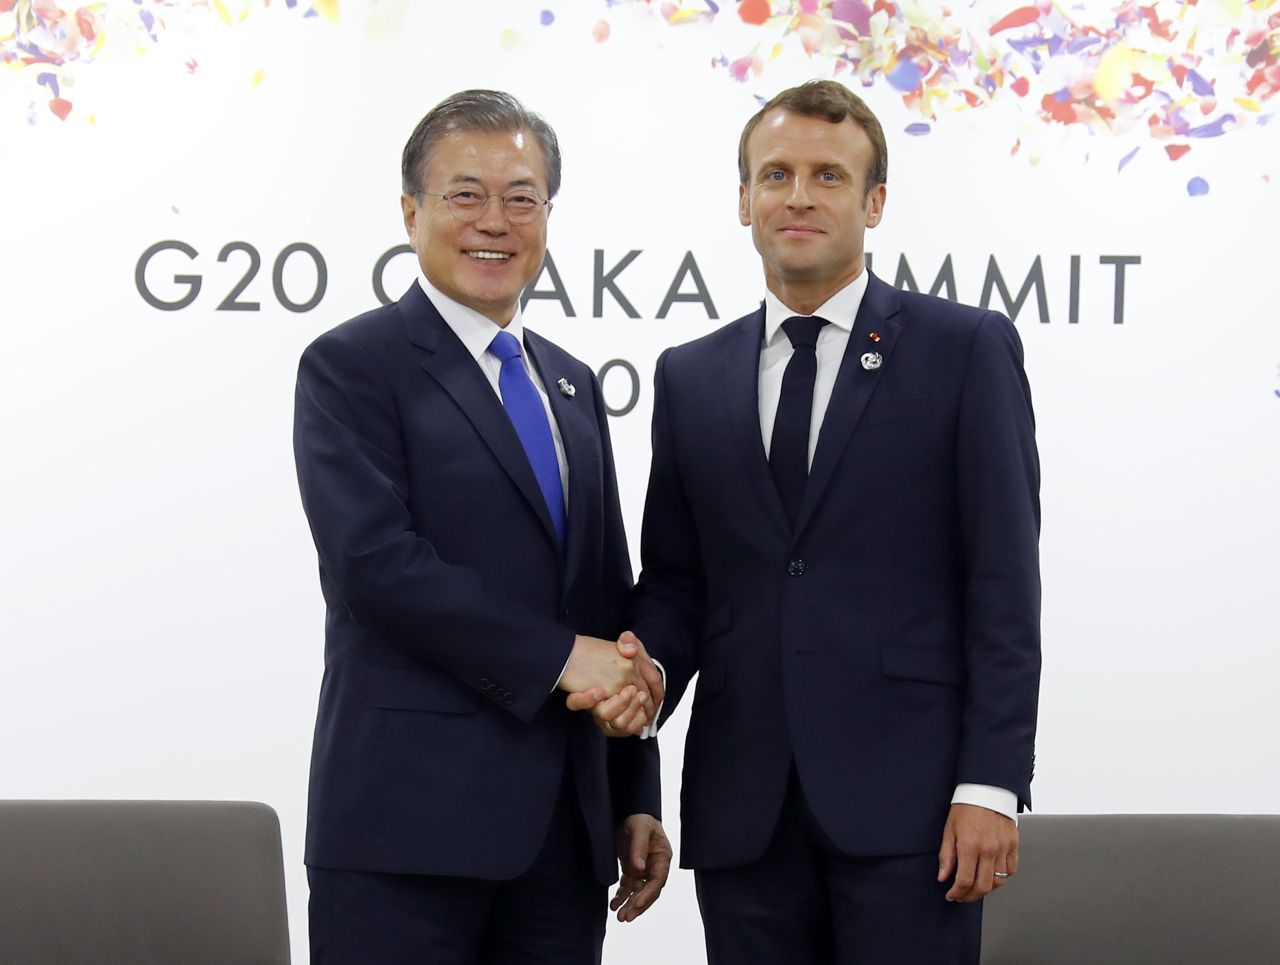 President Moon Jae-in and French President Emmanuel Macron pose at the start of their meeting in Osaka, Japan on Friday. Yonhap